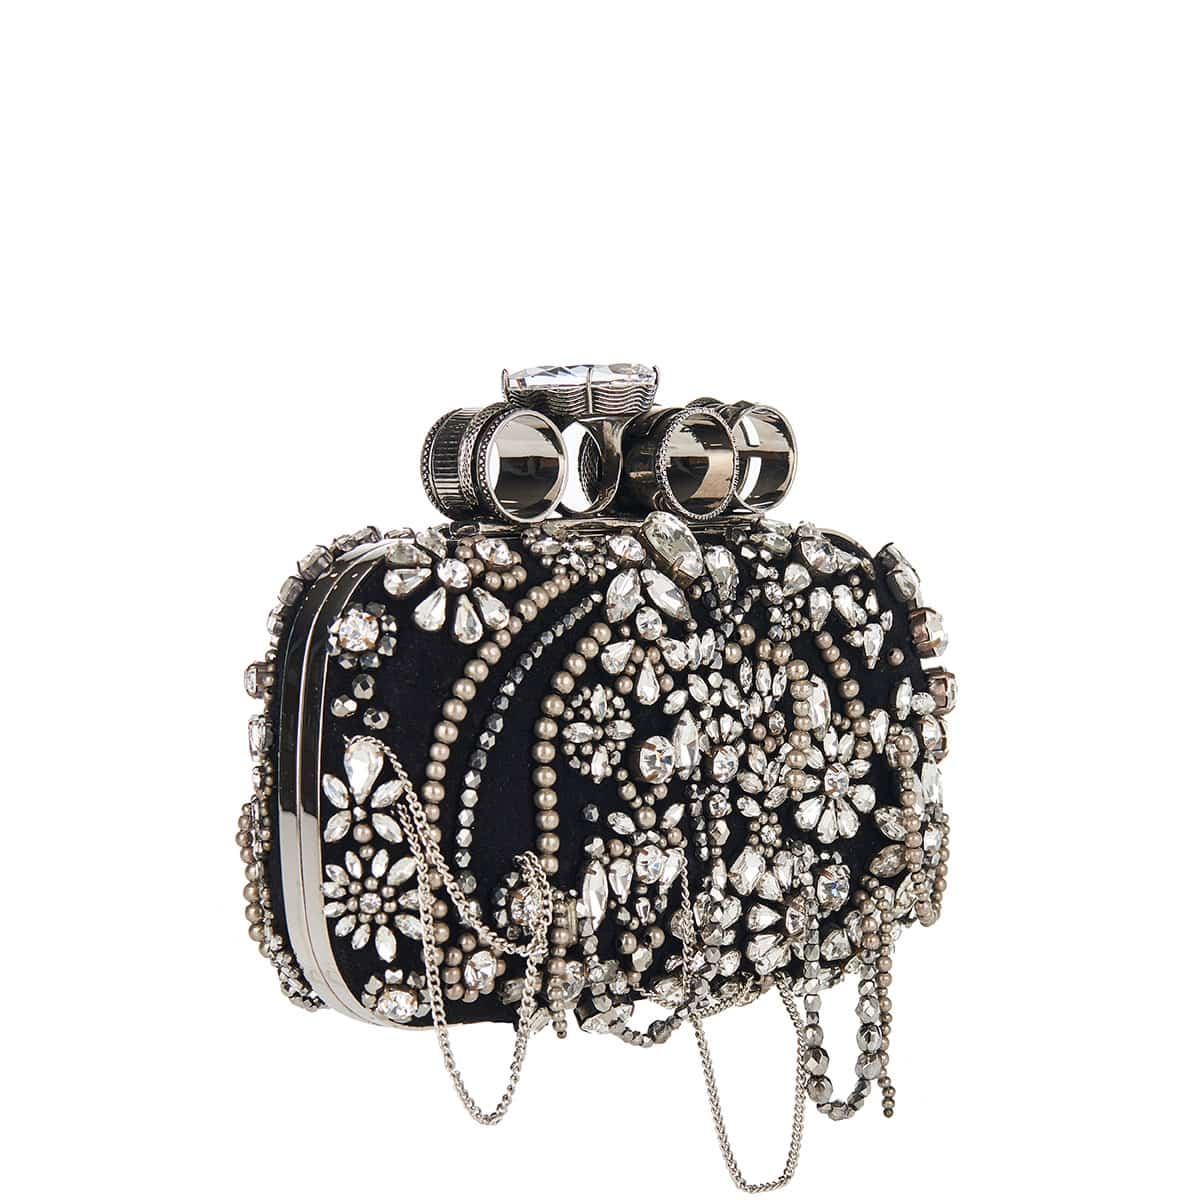 Four-ring crystal-embellished box clutch